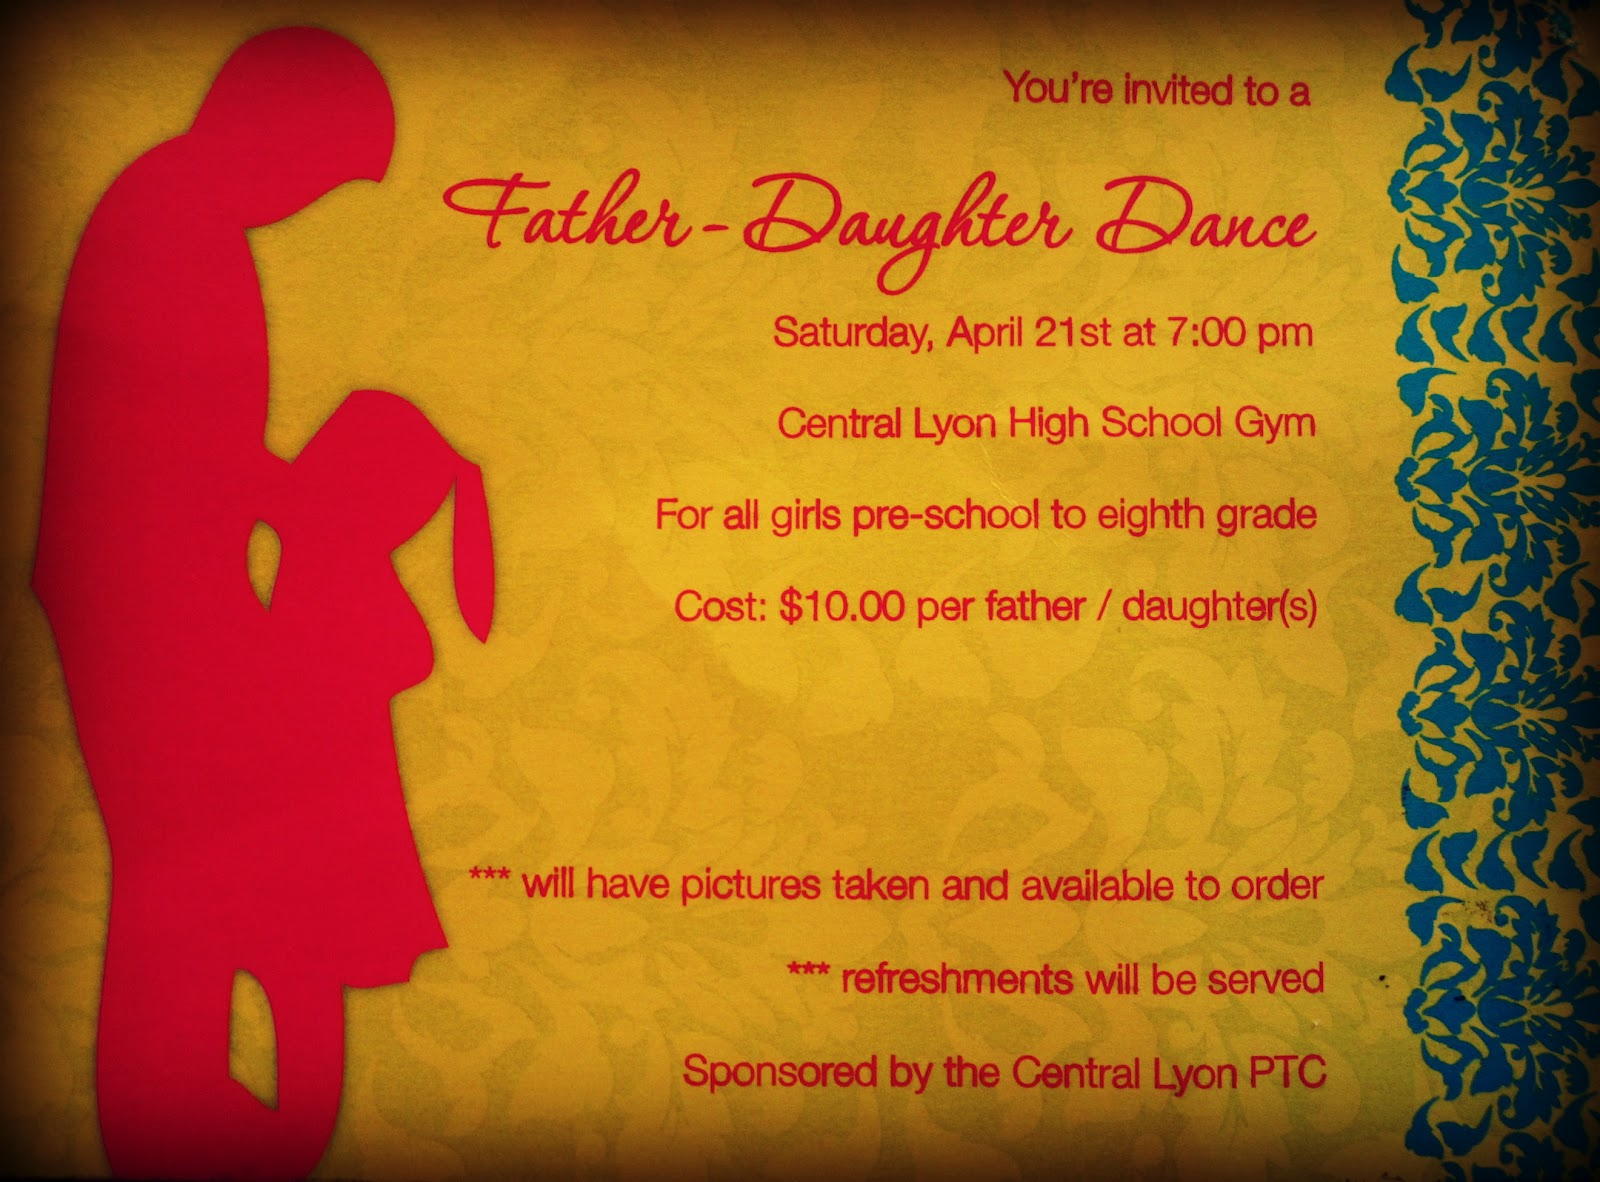 Father Daughter Dance 2012 Life Love and Laughter in a Large Family